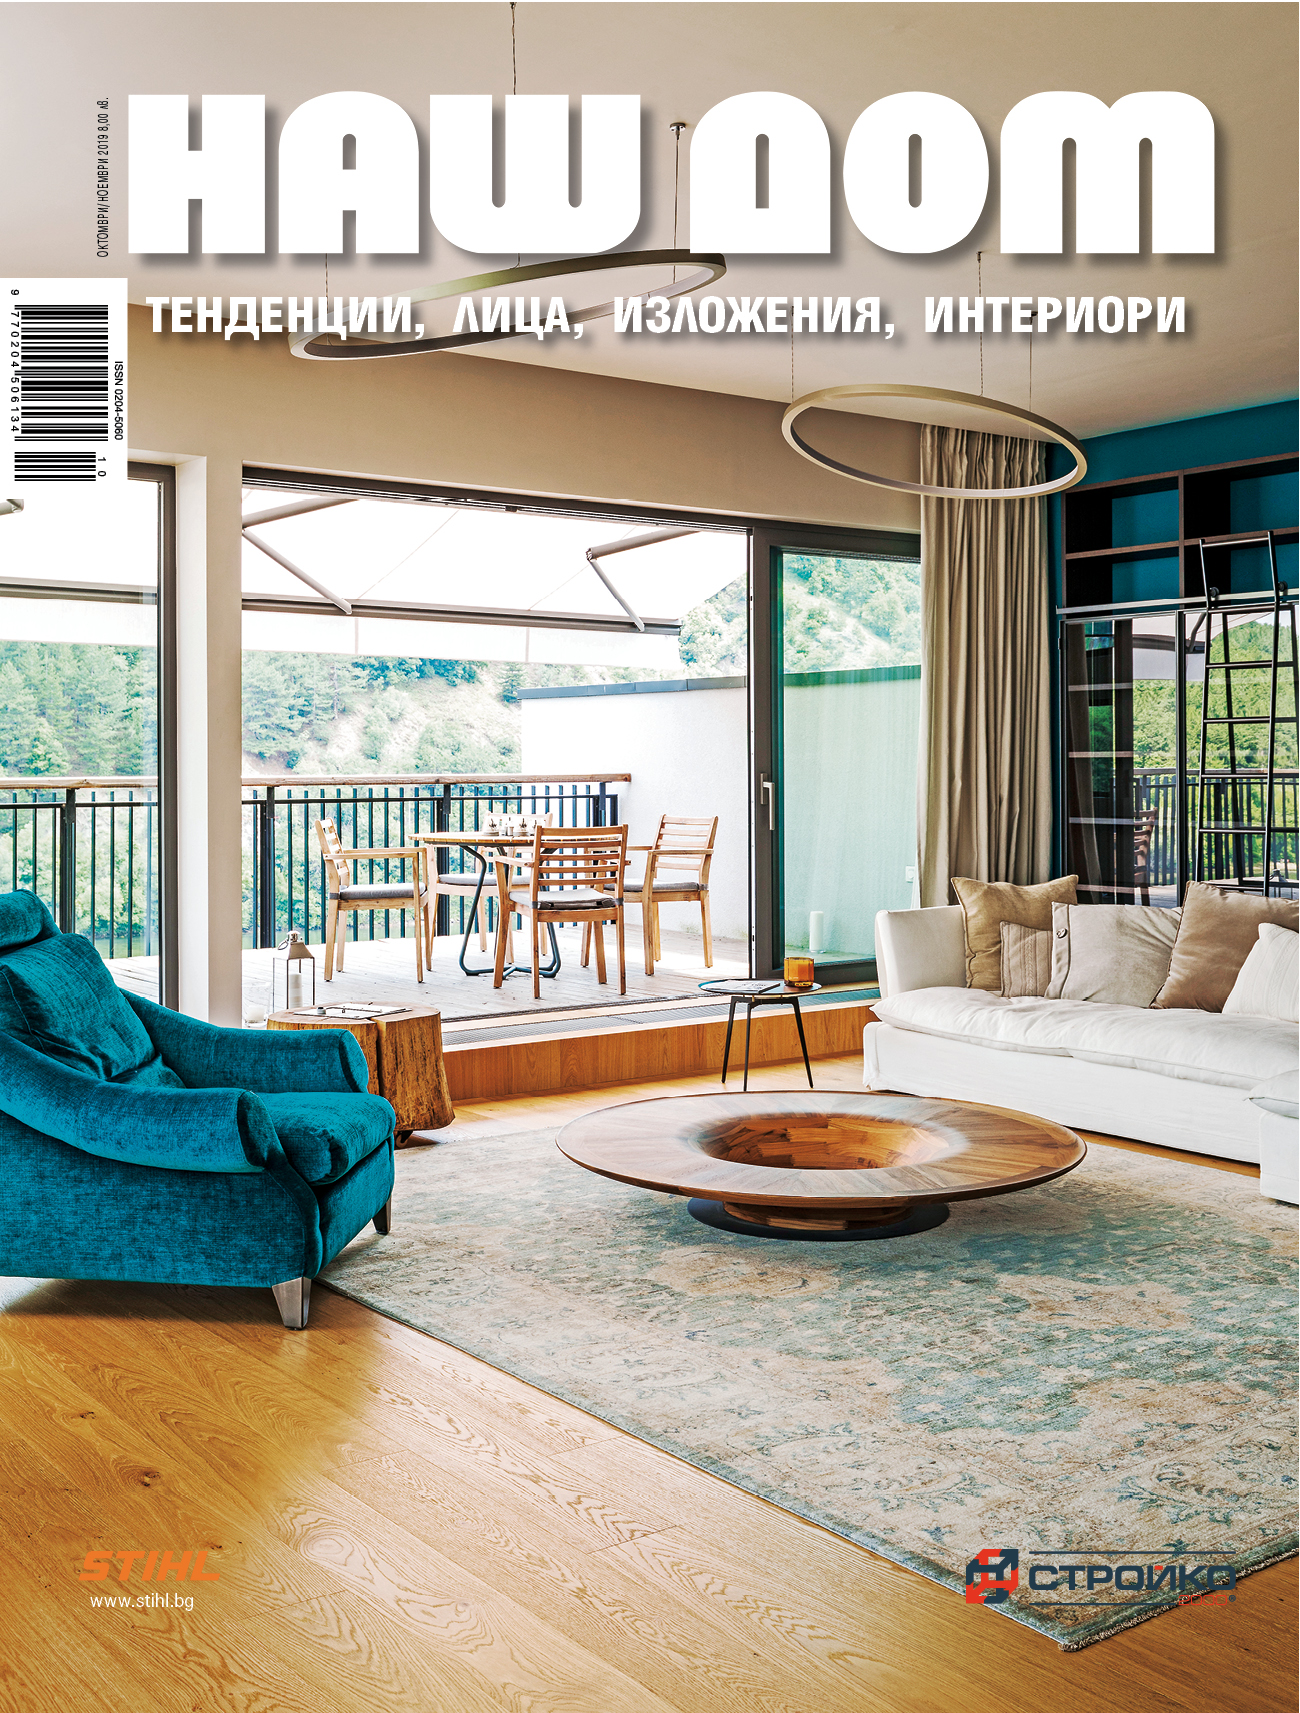 Interior-design-cover-nash-dom-allinstudio_2019